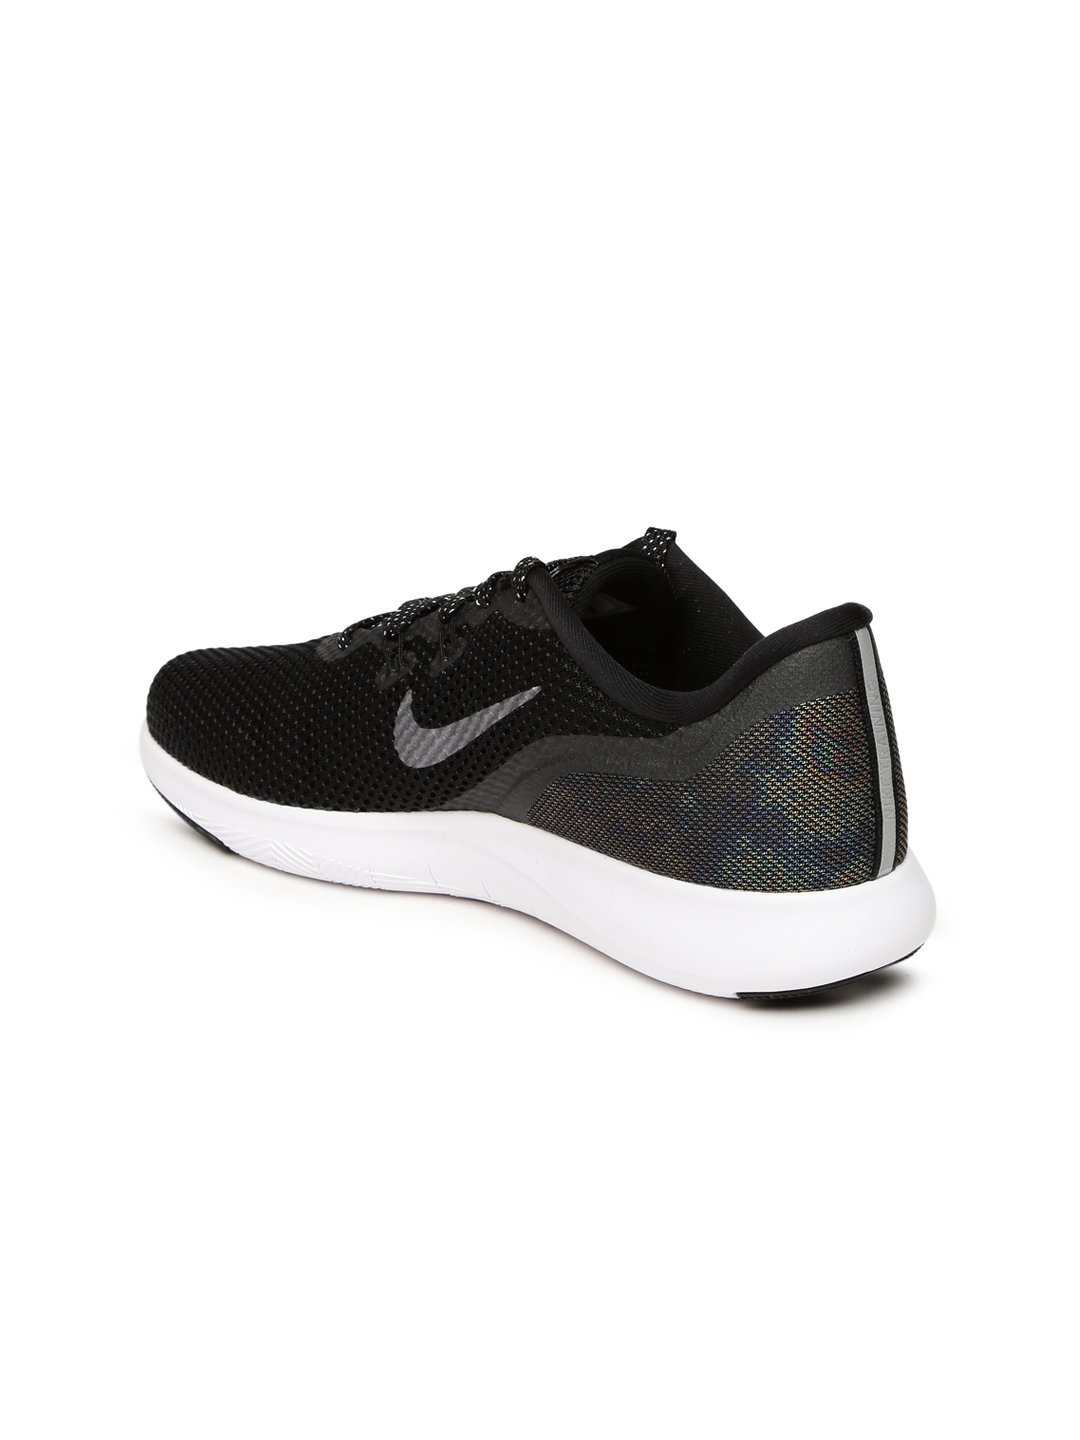 88a386052d5e Buy Women s Nike Flex Trainer 7 Metallic Training Shoe - Sports ...